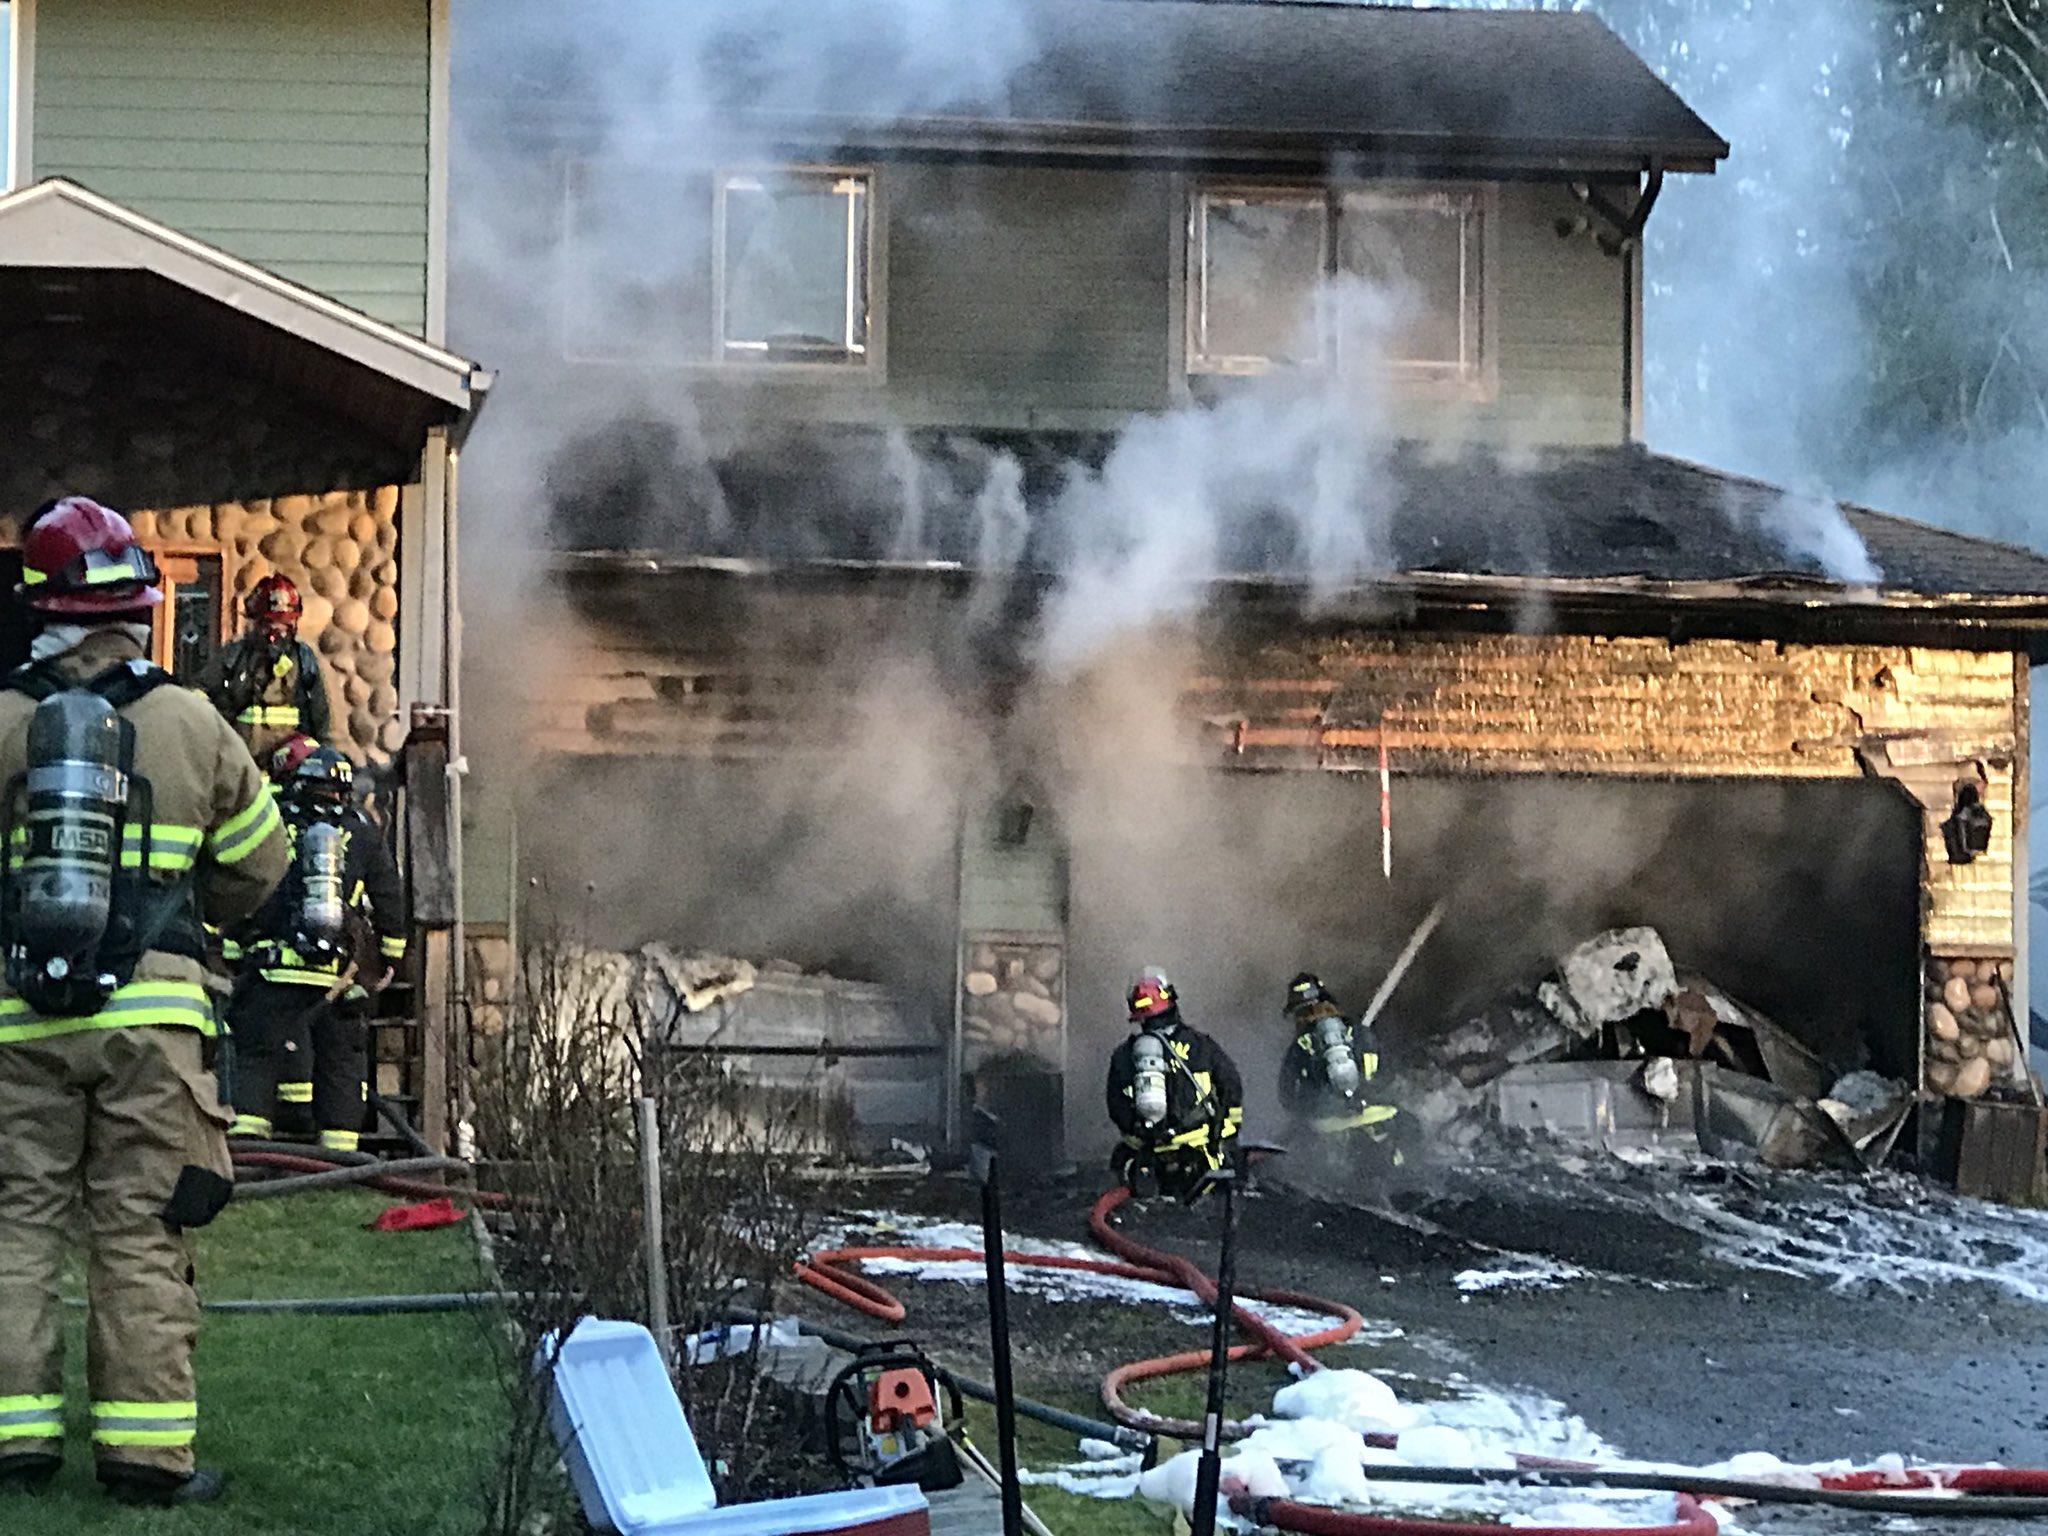 A 17-year-old boy and the family's dog managed to escape a burning home in Bremerton Monday afternoon, Jan. 22, 2018. (Photo: Central Kitsap Fire & Rescue)